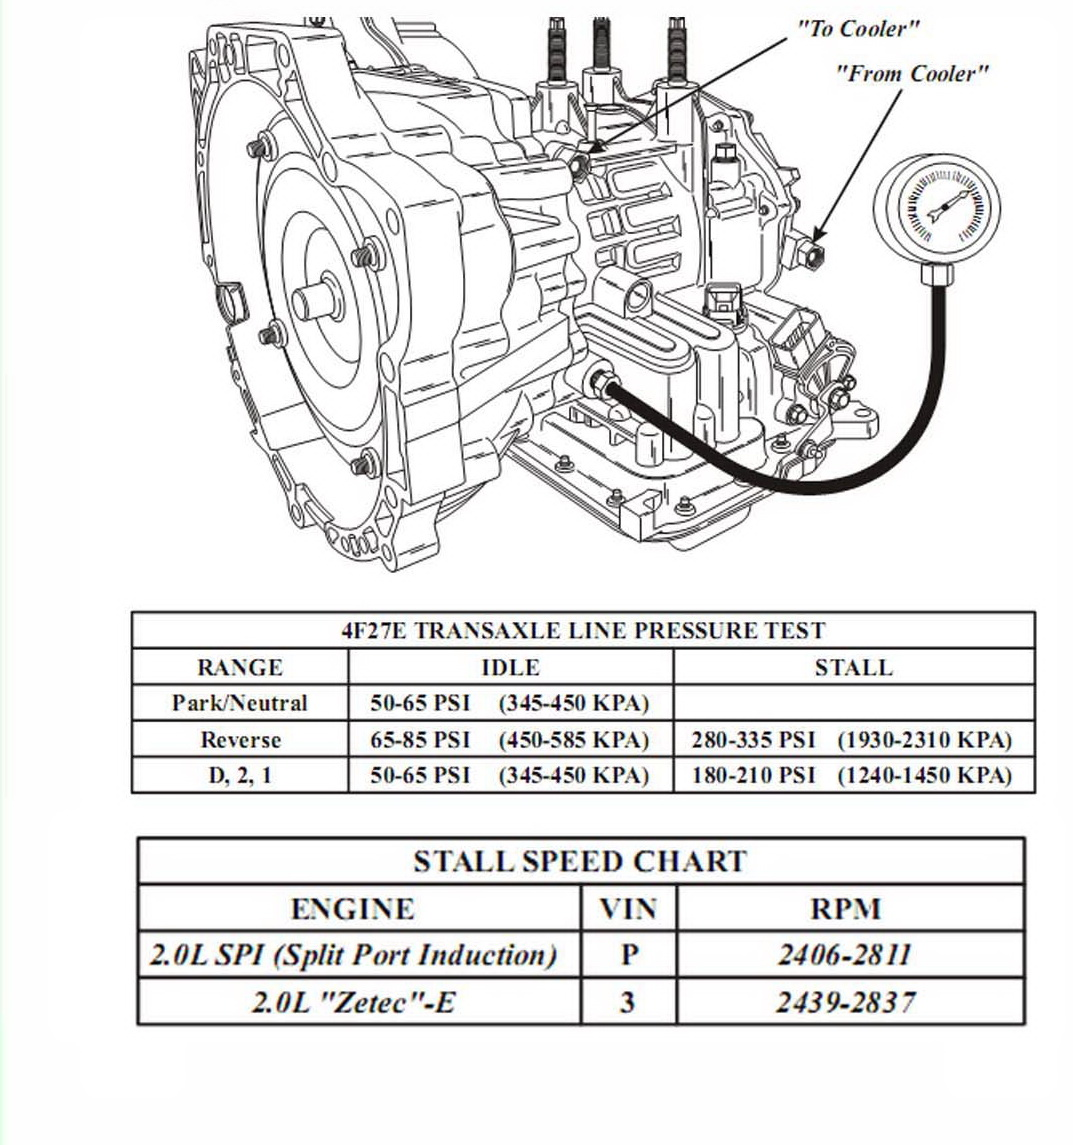 hight resolution of transmission repair manuals 4f27e instructions for rebuild ford transmission diagram automatic transmission 4f27e